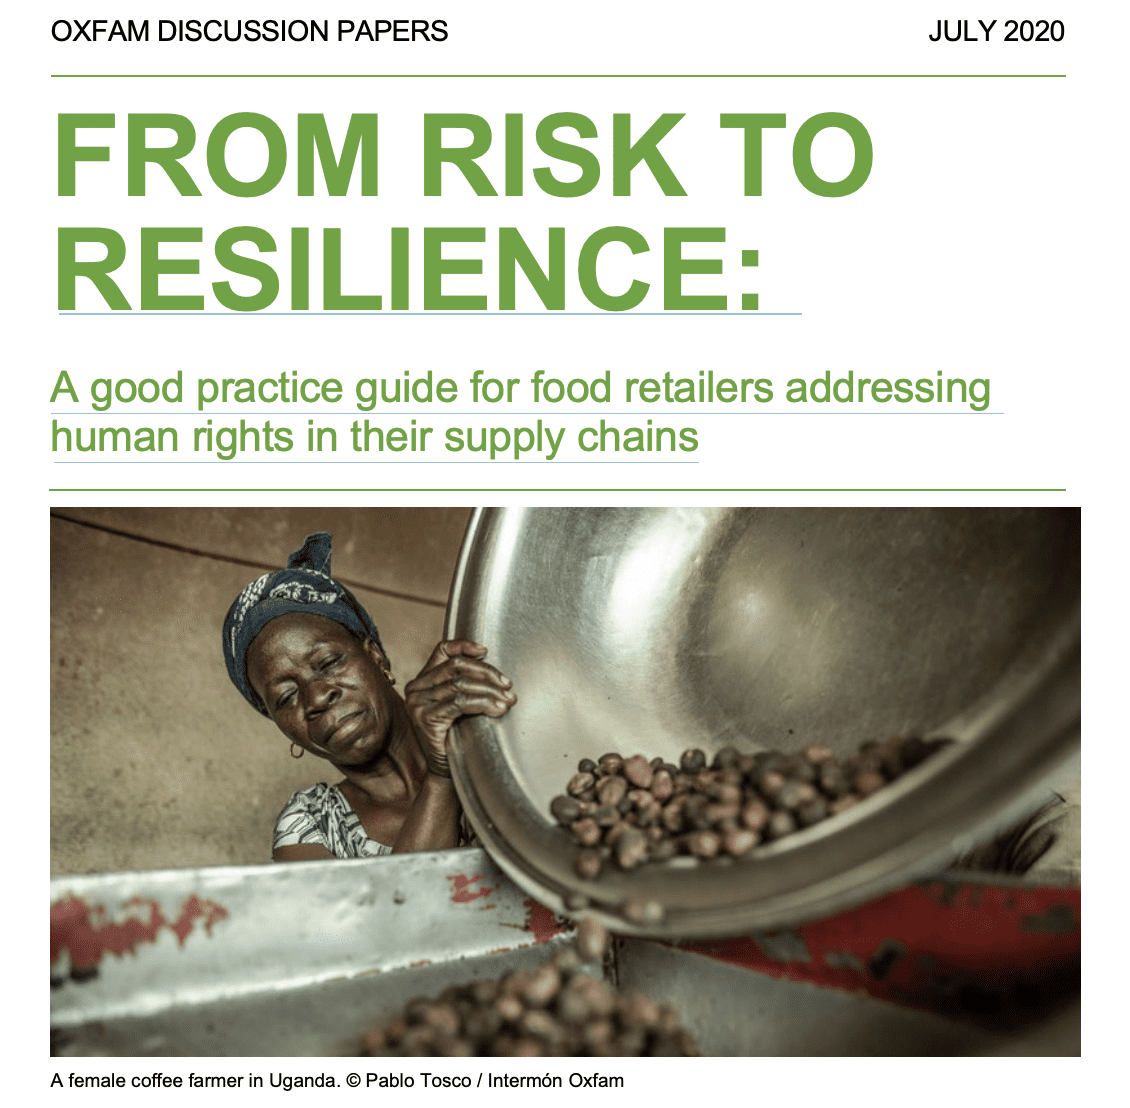 From Risk to Resilience: A good practice guide for food retailers addressing human rights in their supply chains